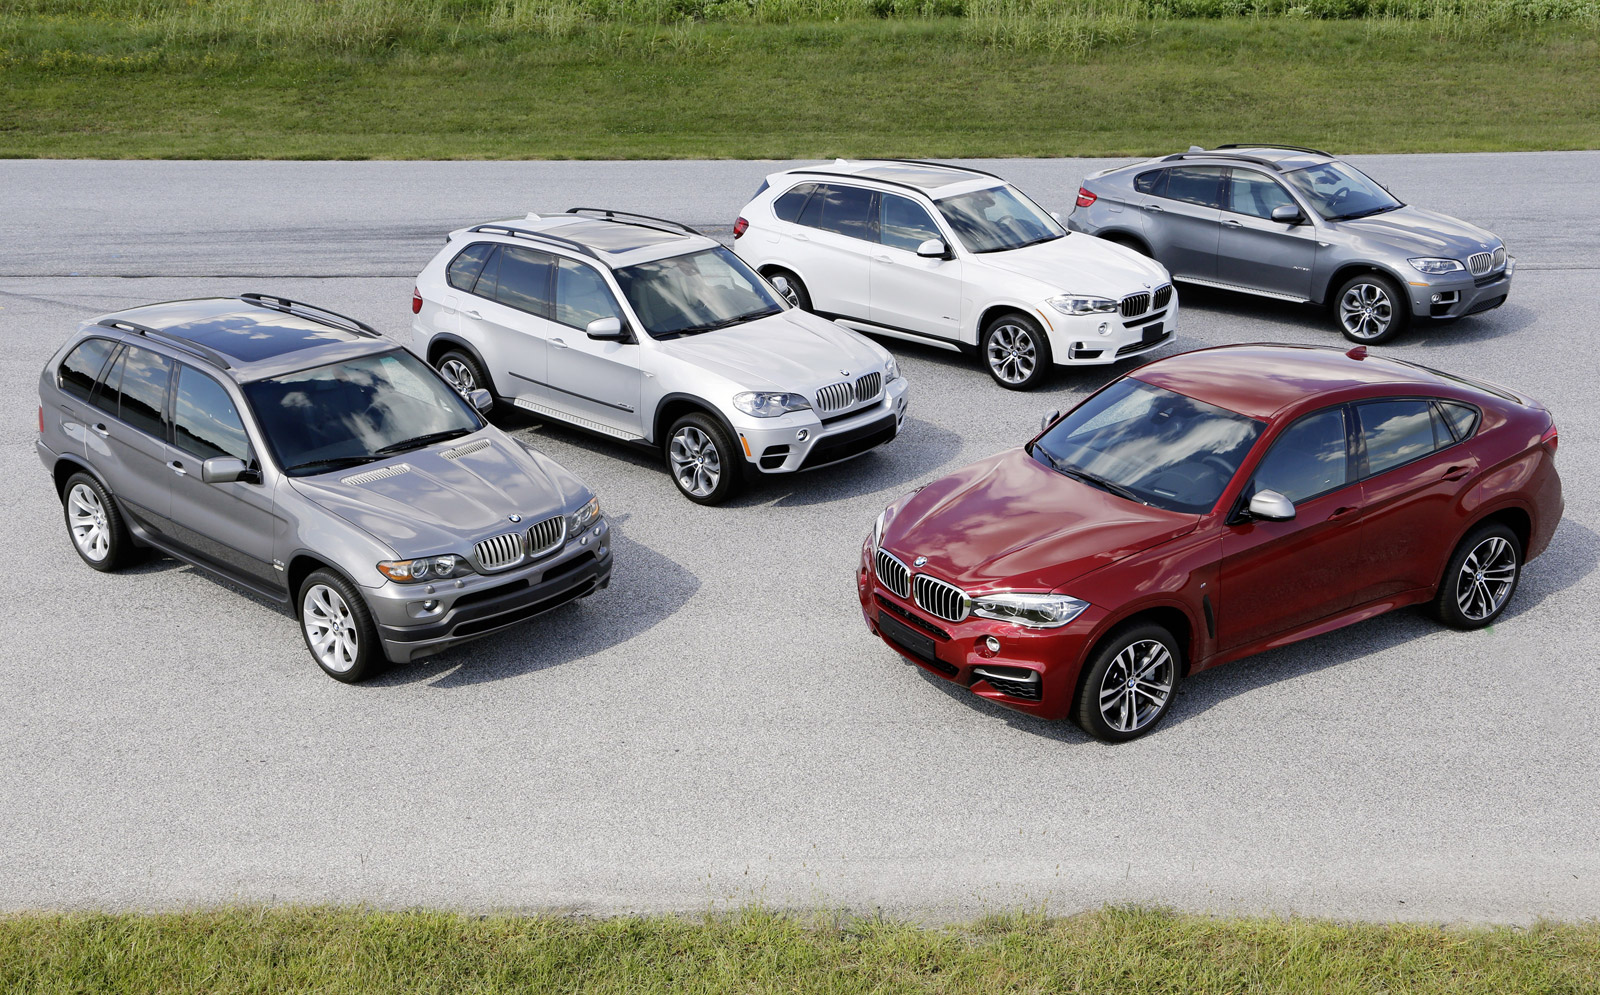 Bmw Celebrates 15th Anniversary Of The X5 Its First X Model